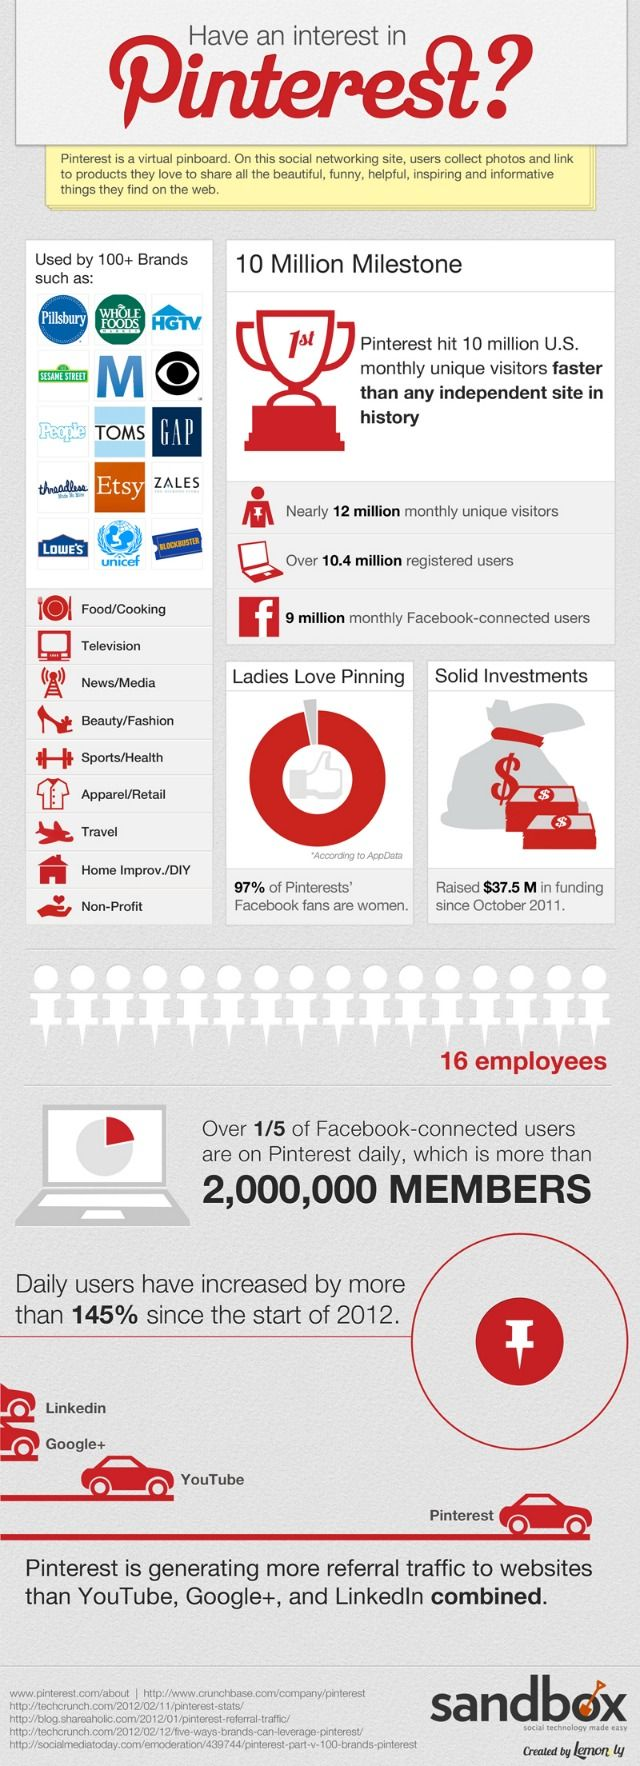 #Pinterest Is Hot #Infographic